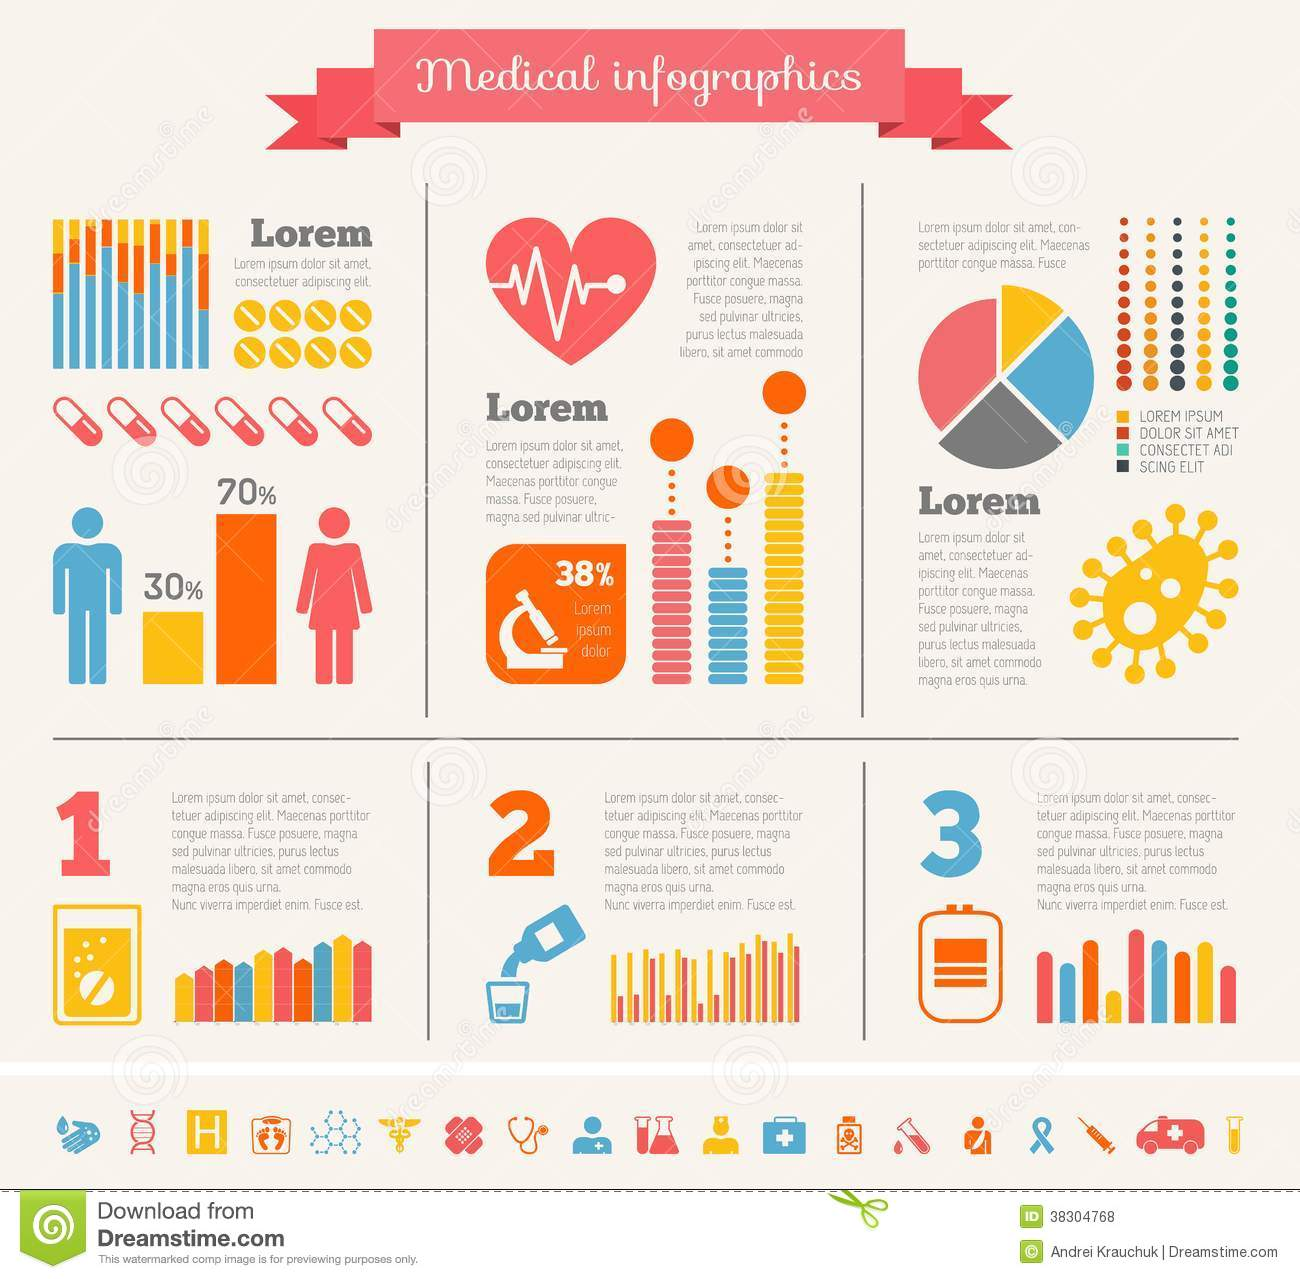 Free Medical Infographic Template